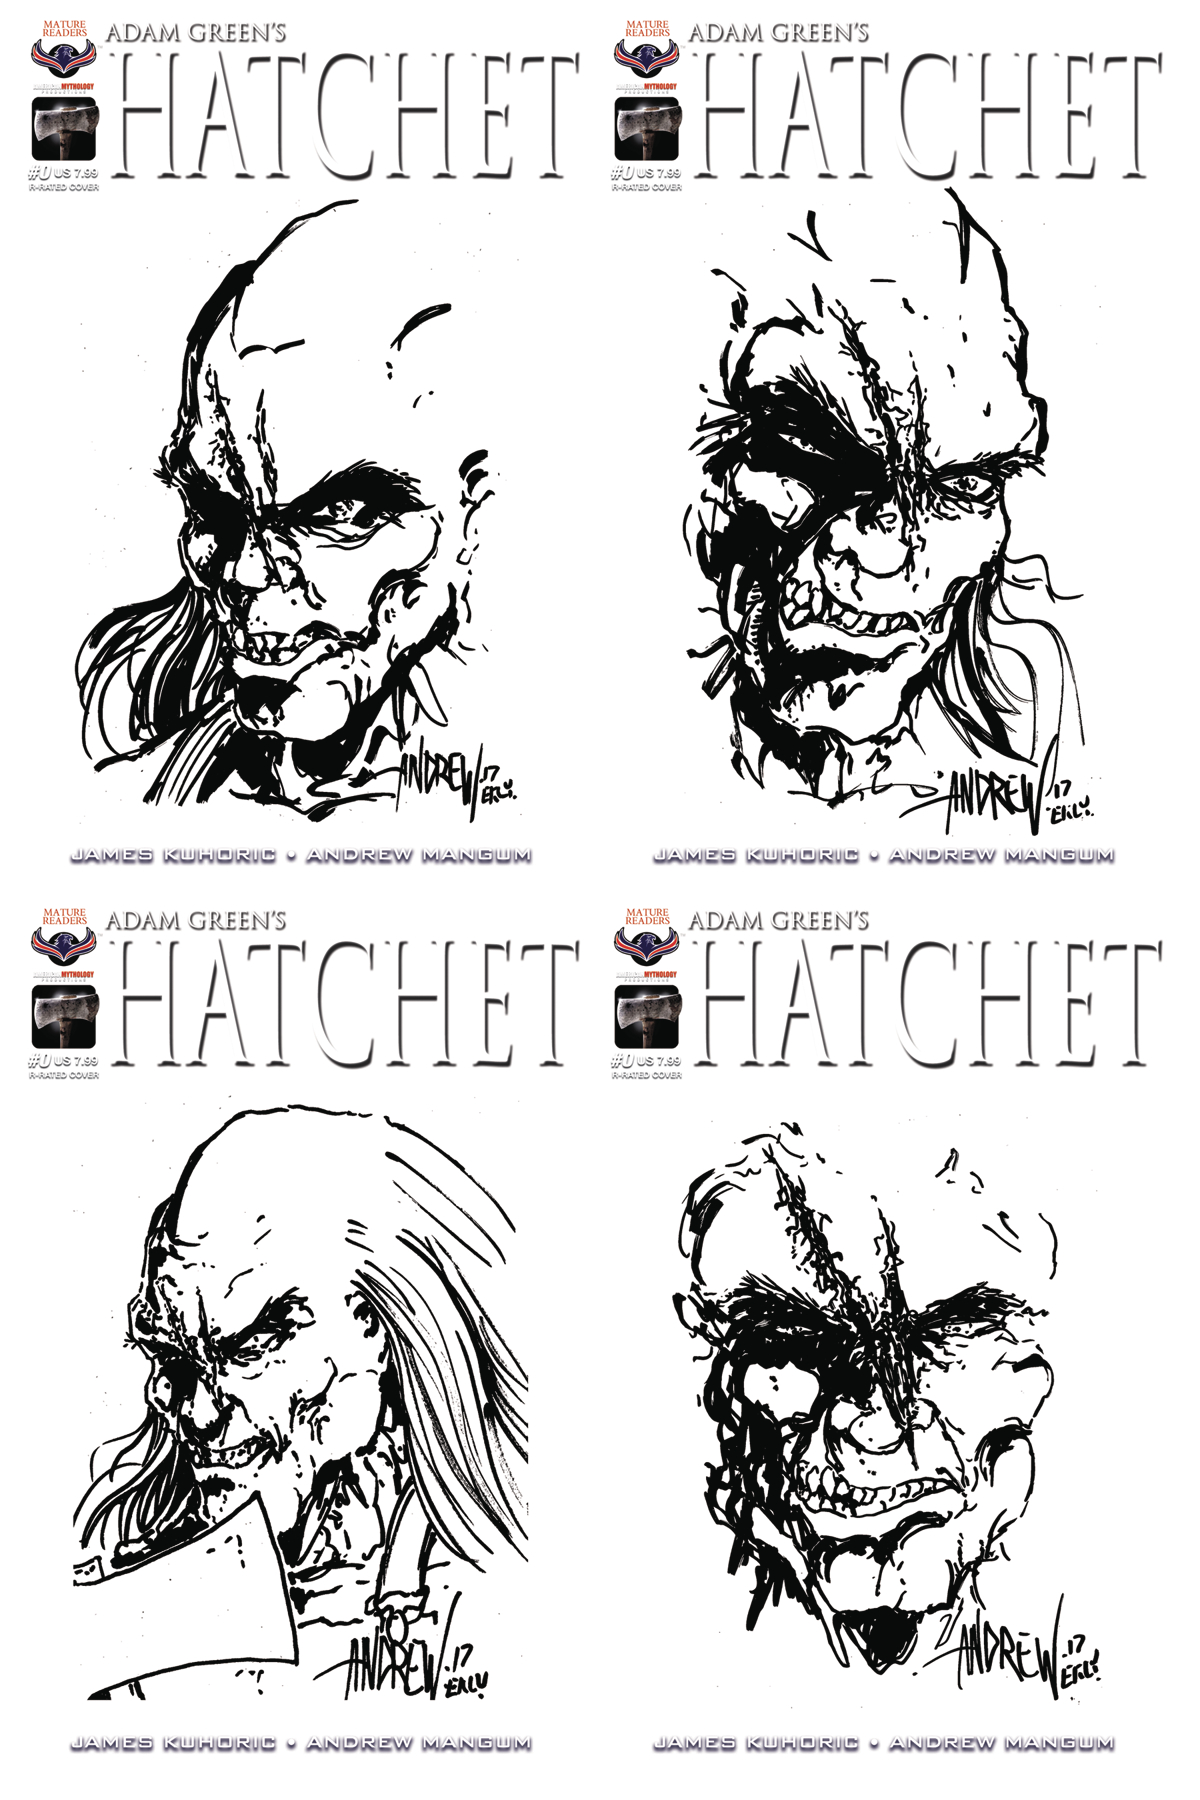 HATCHET #0 HAND DRAWN SKETCH CVR